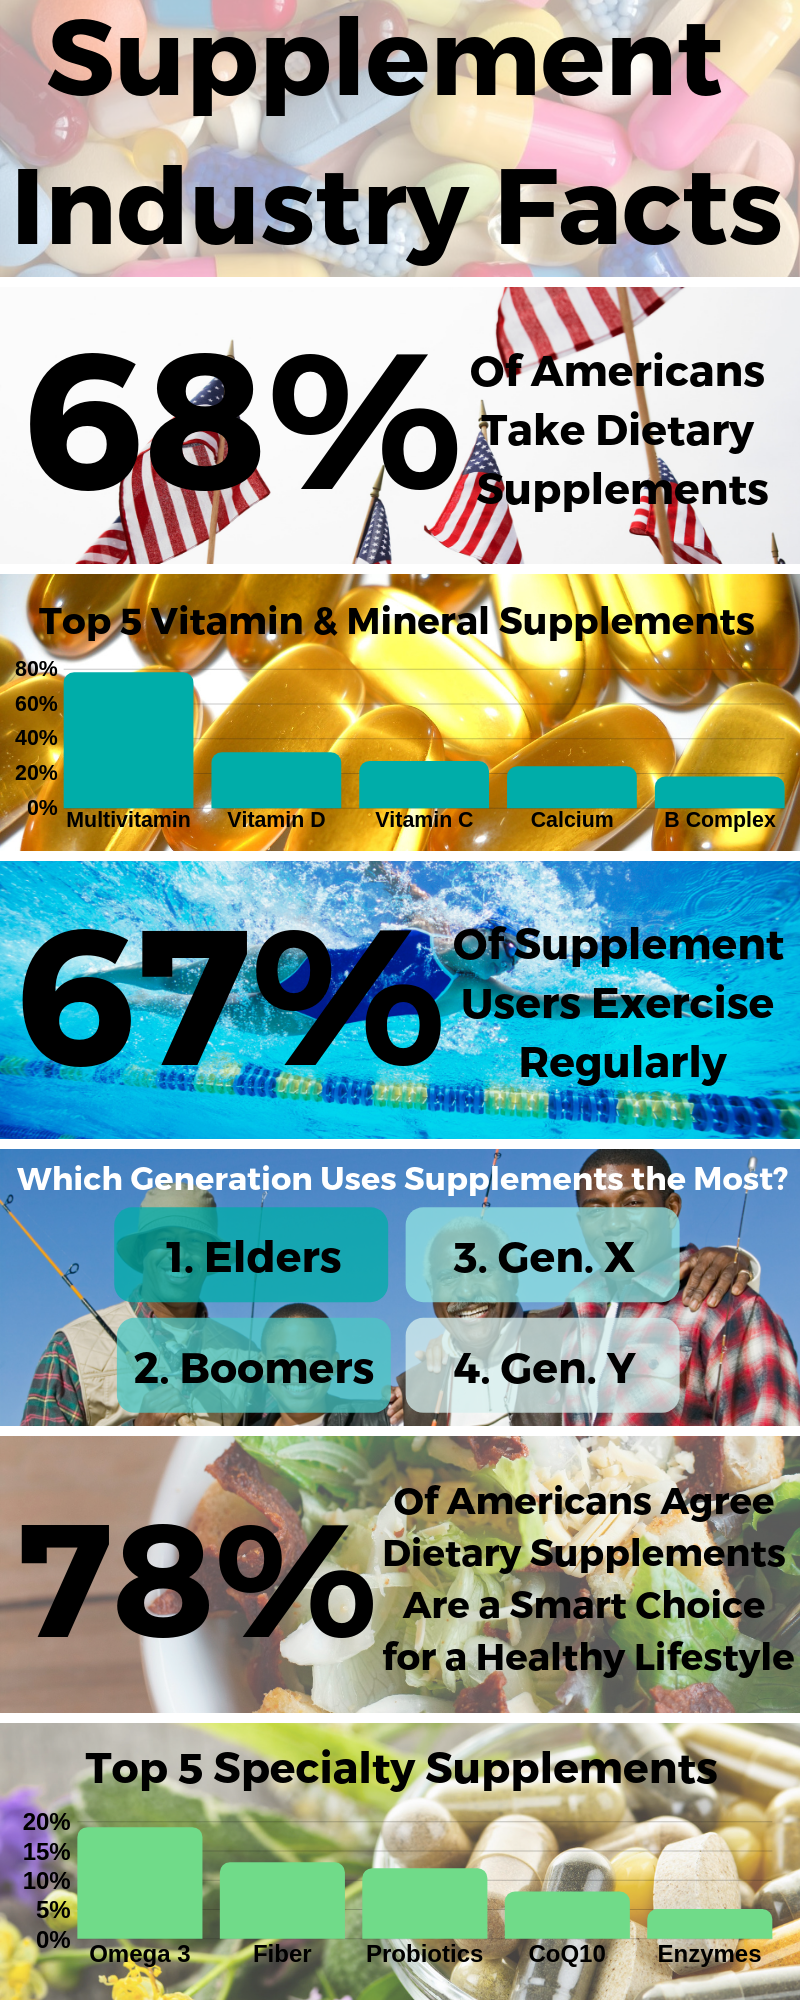 supplement industry facts infographic